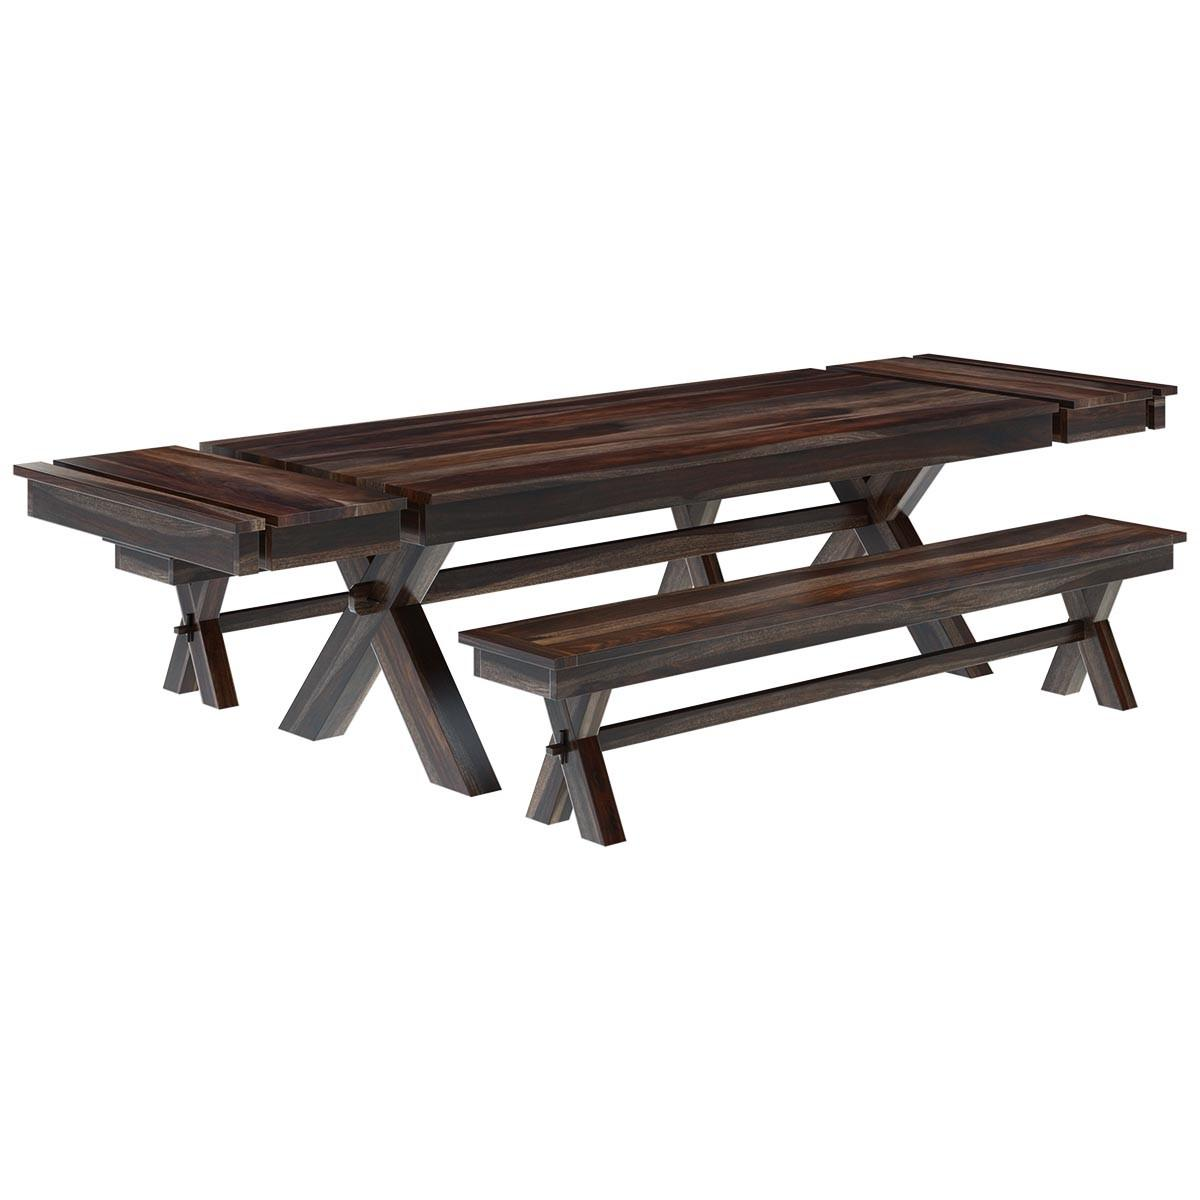 Westside Indoor Picnic Style Dining Table Bench Set